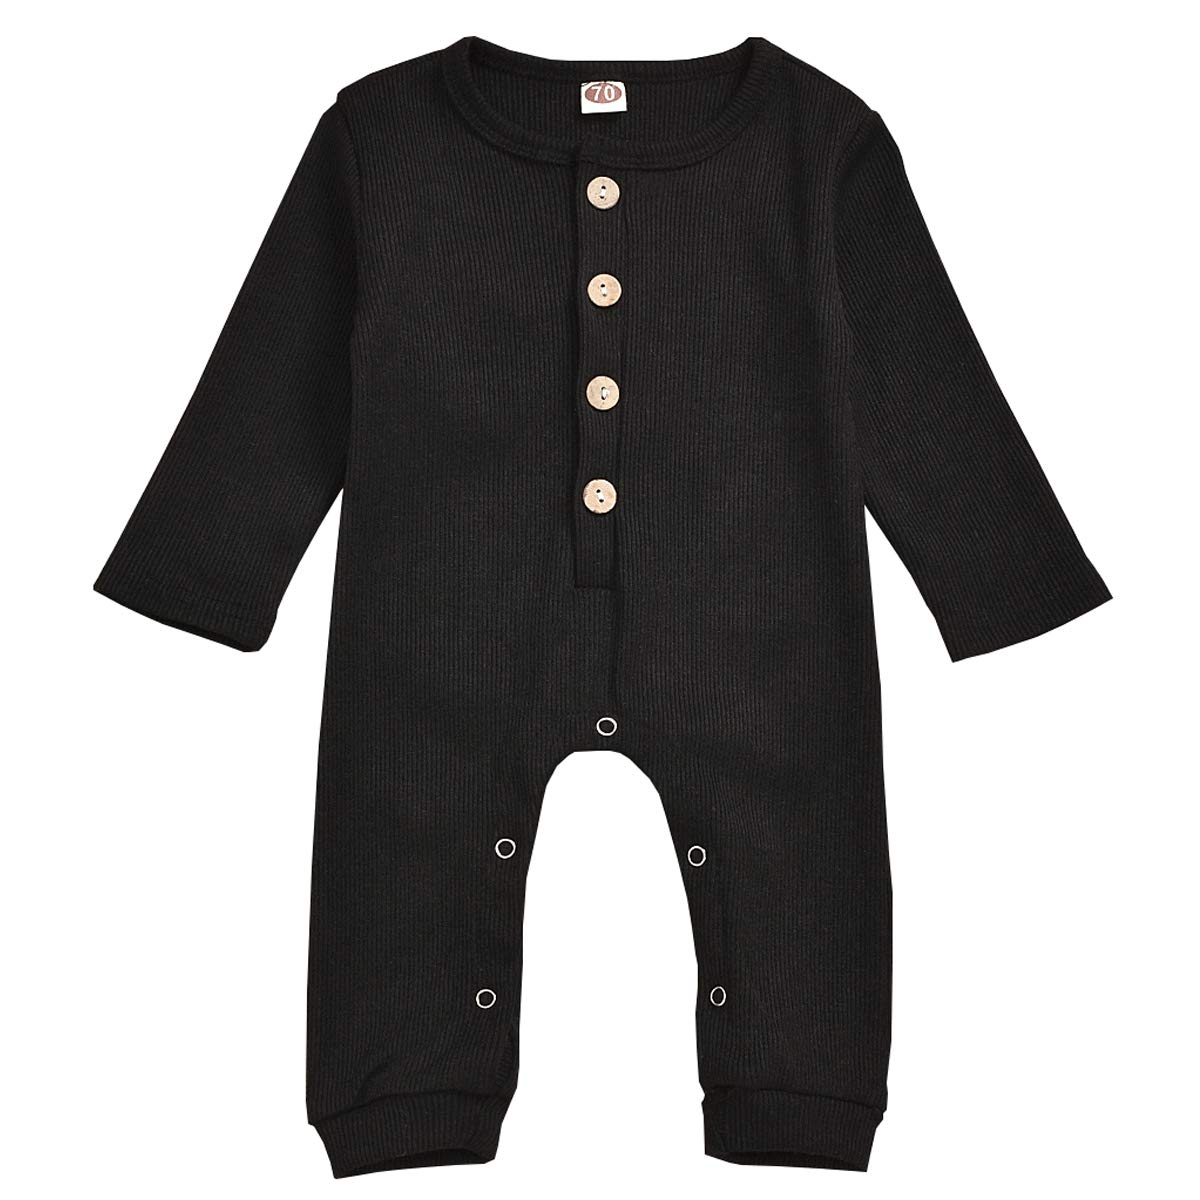 Kislio Newborn Unisex Baby Boys Girls Romper Solid Color Long Sleeve Jumpsuit Clothes